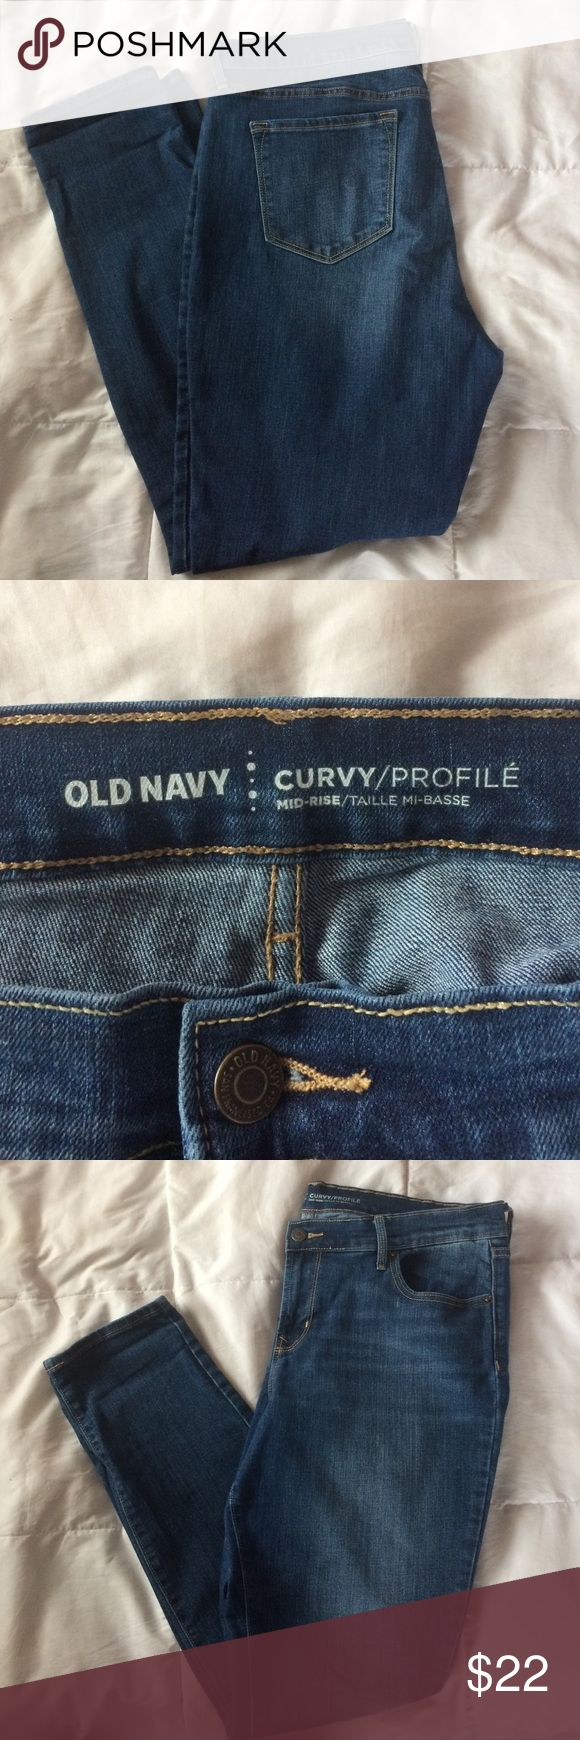 old navy curvy jeans old navy curvy mid-rise jeans, only worn a few times Old Navy Jeans Skinny